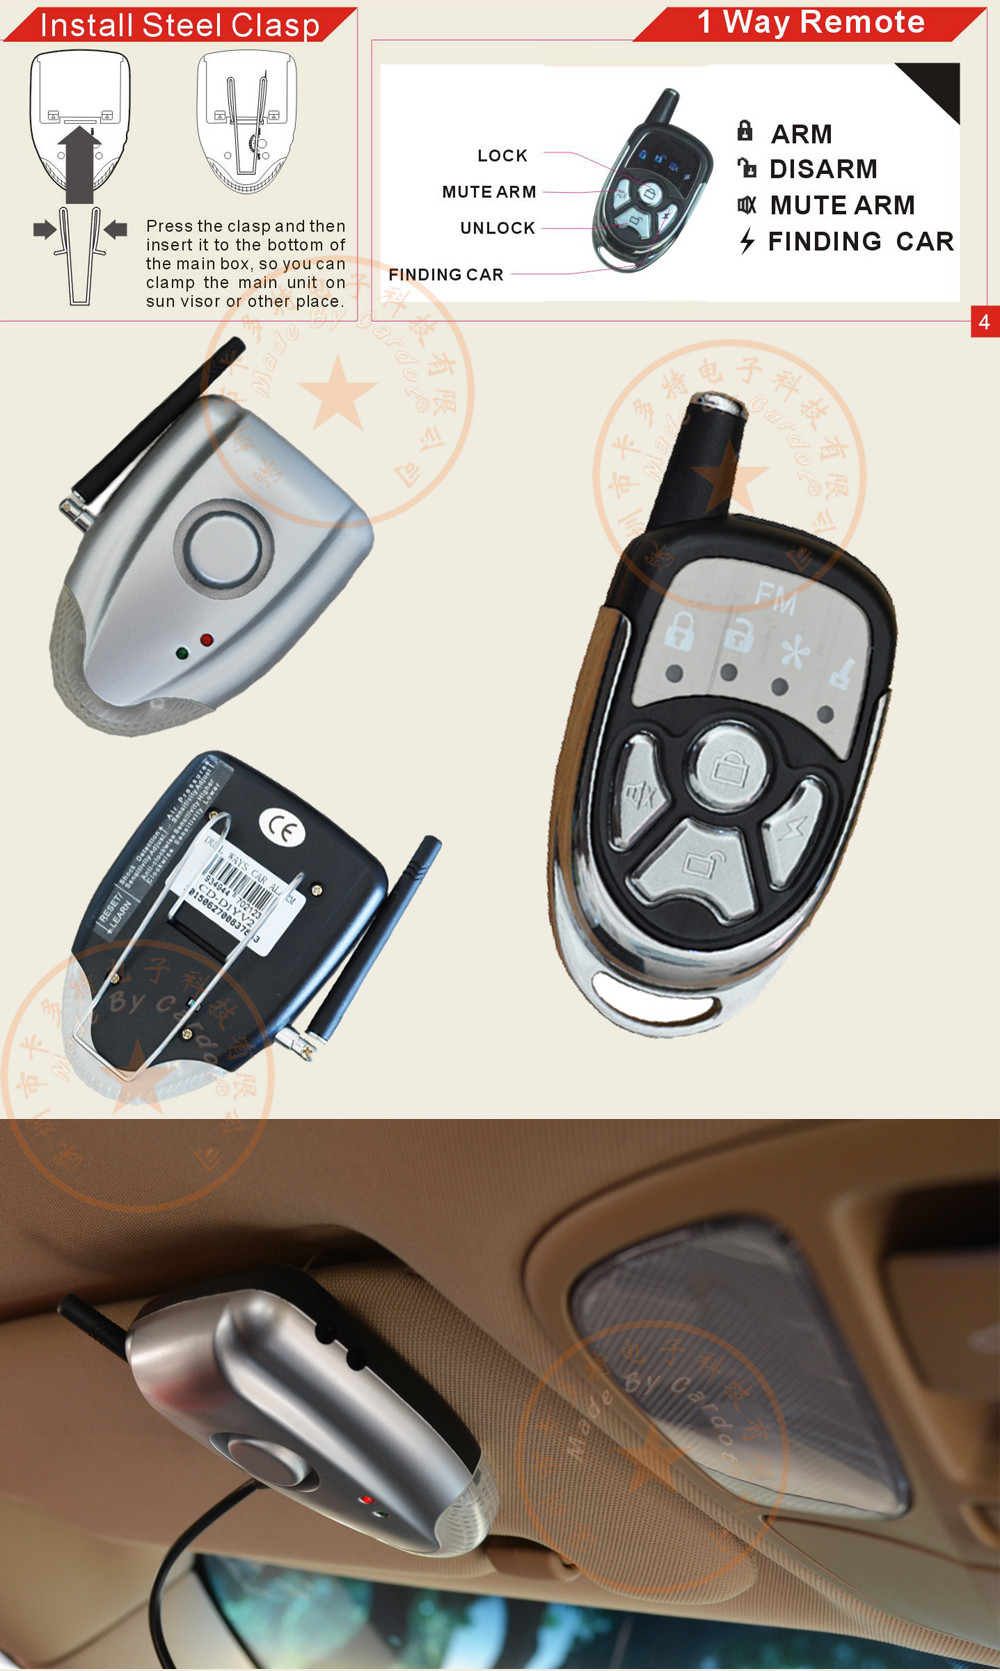 Cardot Diy Two Way Car Alarm System Is With Shock And Air How To Install Alarms Page02 Page01 Page 04